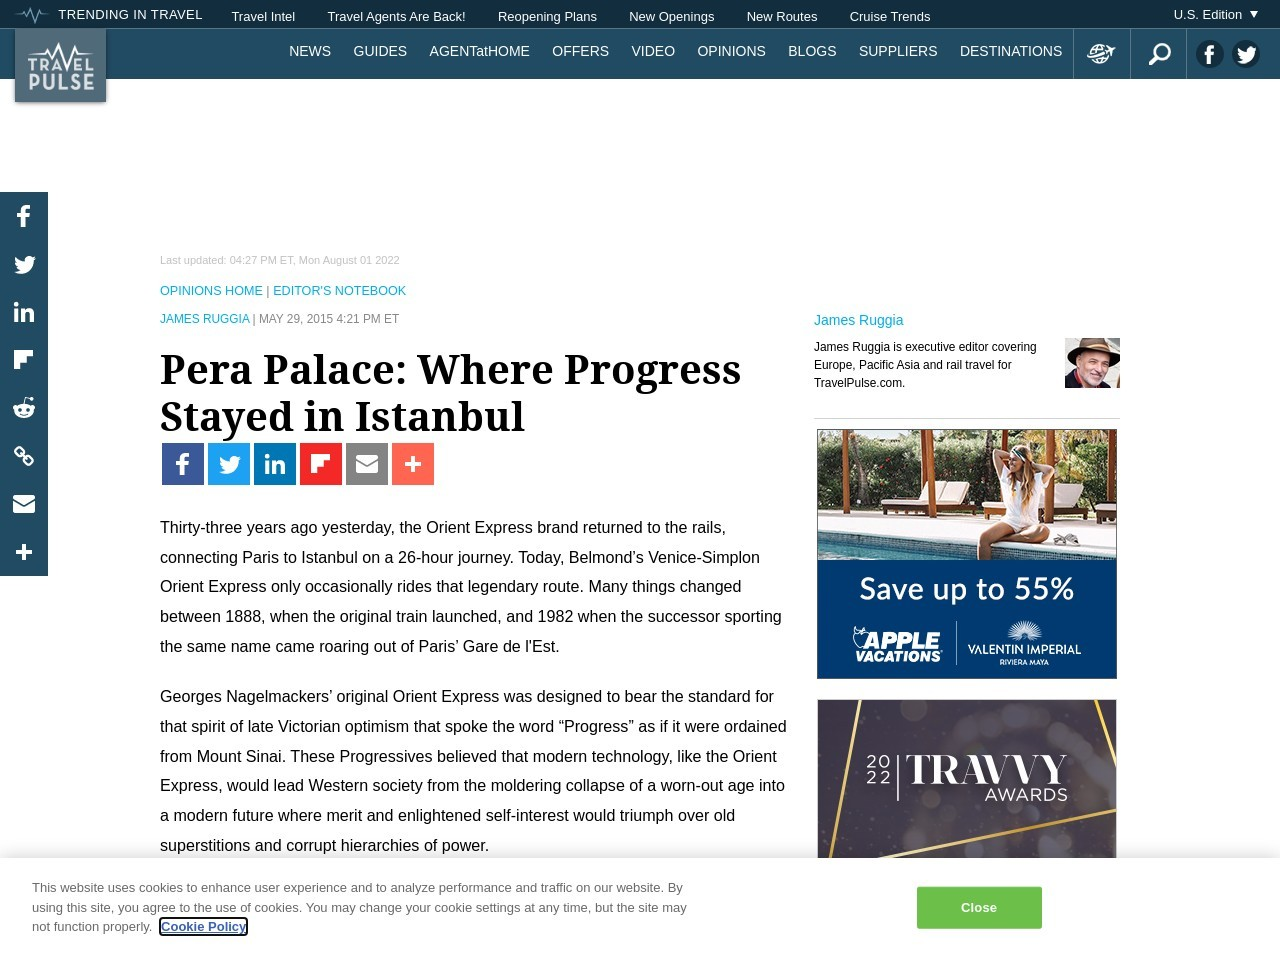 Pera Palace: Where Progress Stayed in Istanbul